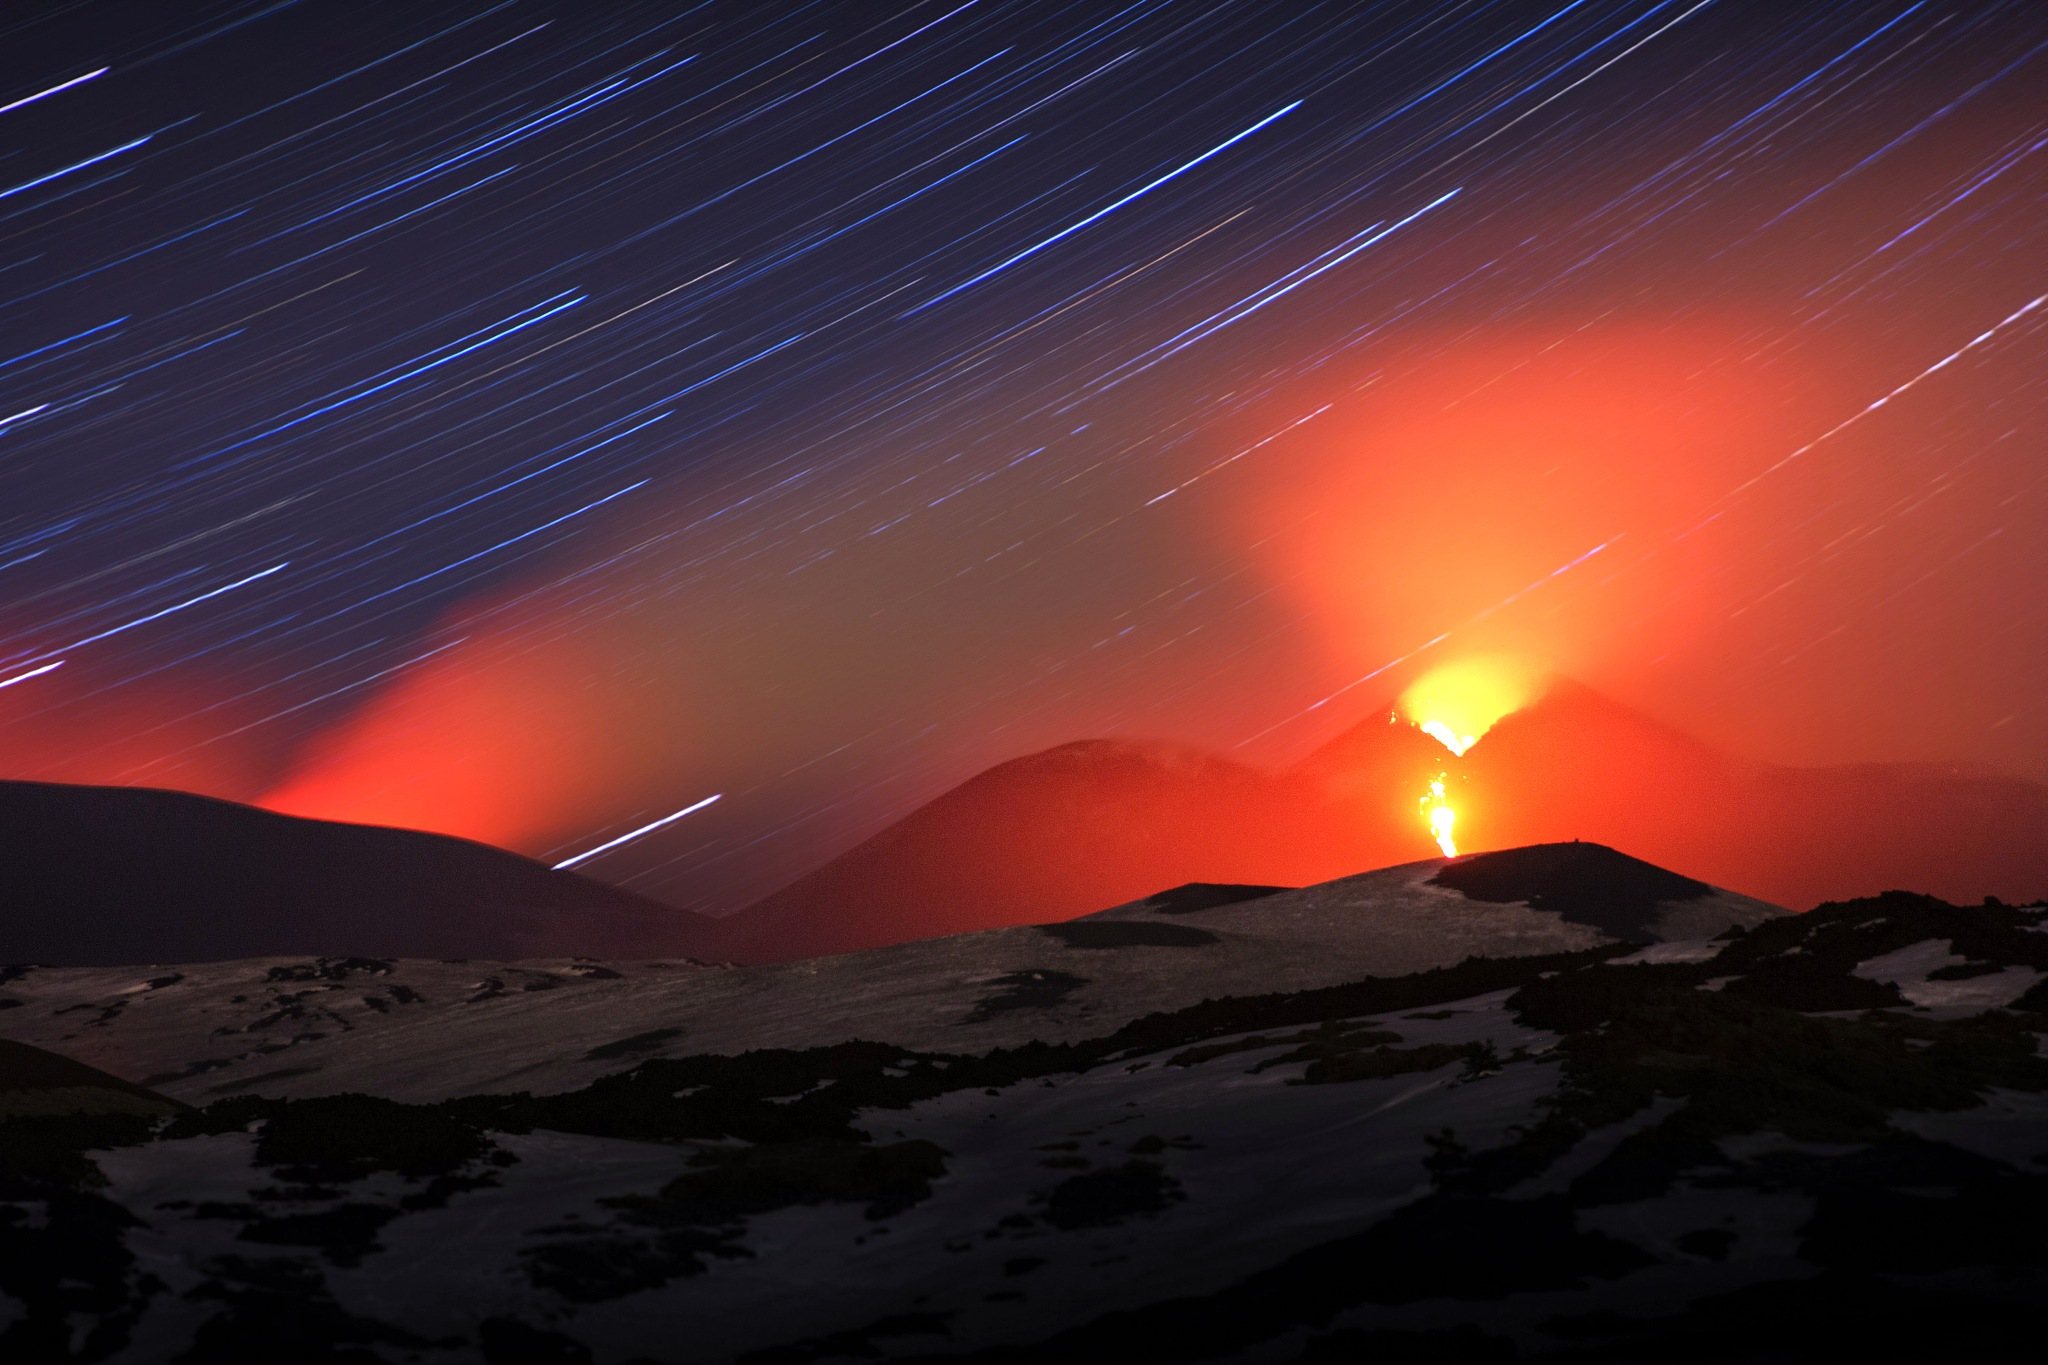 A Startrail Eruption of Mount Etna by Alessio Vaccaro